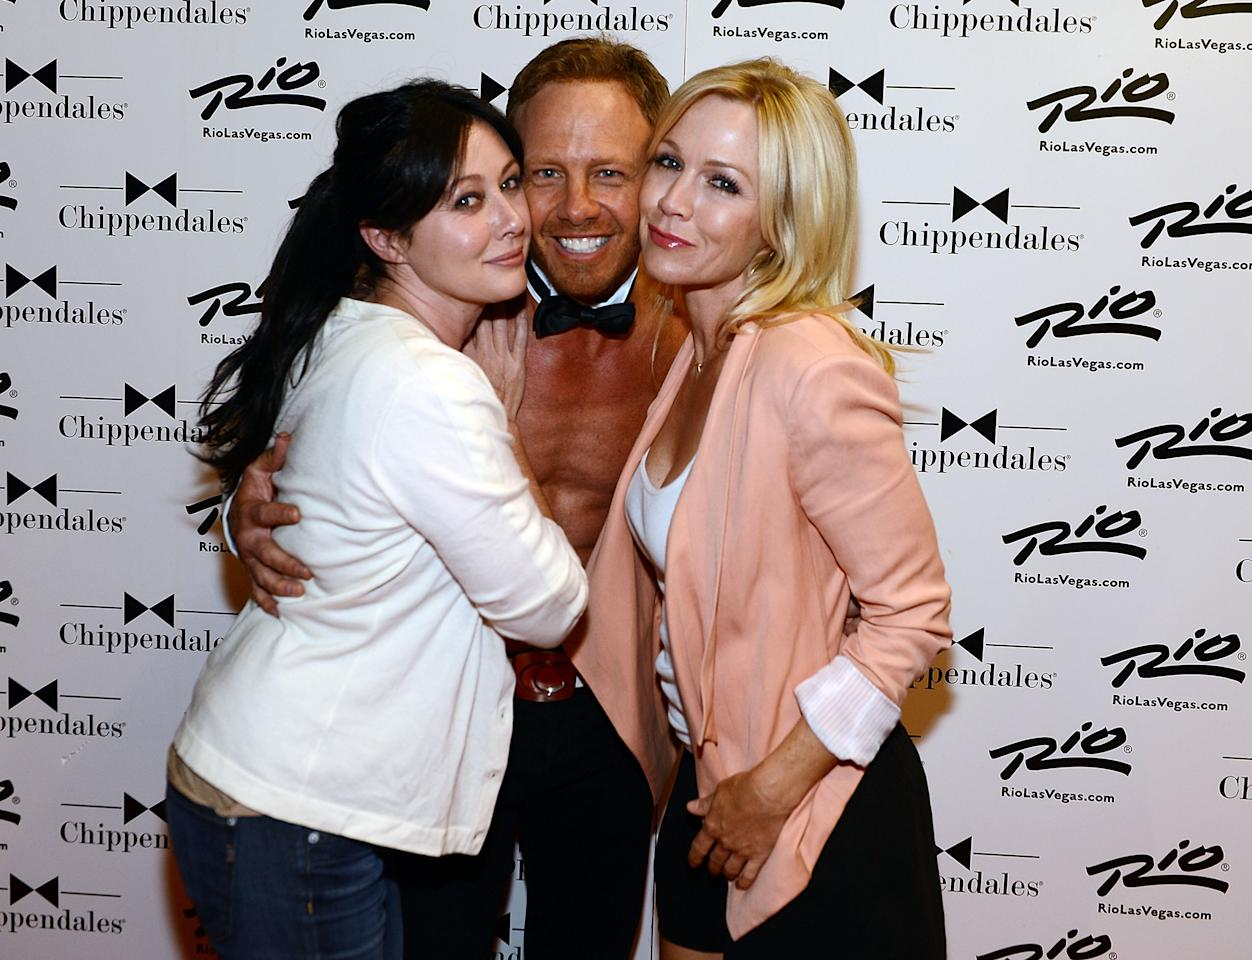 LAS VEGAS, NV - JUNE 30:  90210 reunion Shannen Doherty, Ian Ziering and Jennie Garth at CHIPPENDALES at Rio Hotel and Casino on June 30, 2013 in Las Vegas, Nevada.  (Photo by Denise Truscello/WireImage)